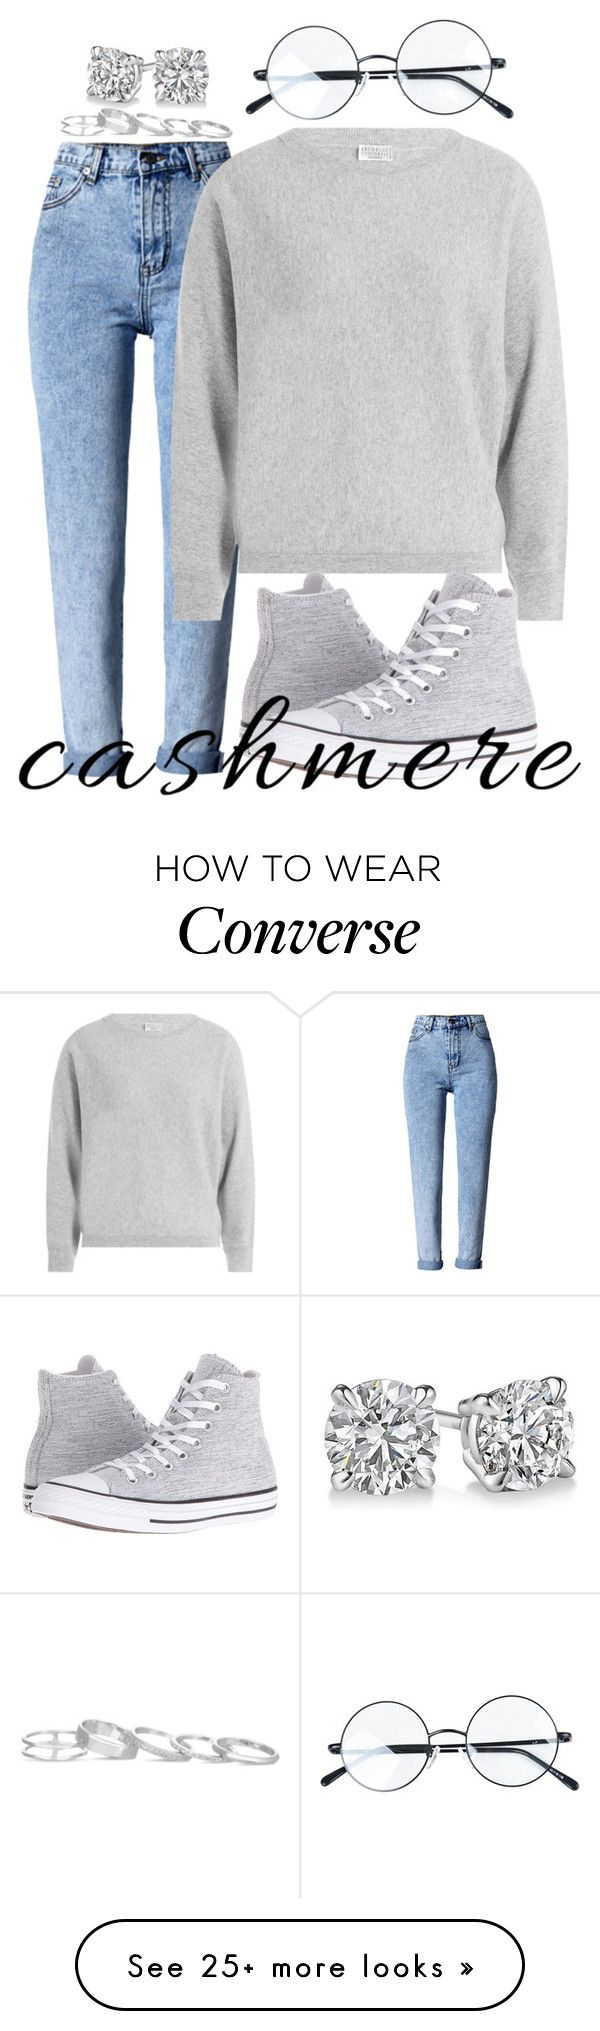 """~334\\334~"" by taytay-55 on Polyvore featuring WithChic, Brunello Cucinelli, Converse and Kendra Scott"